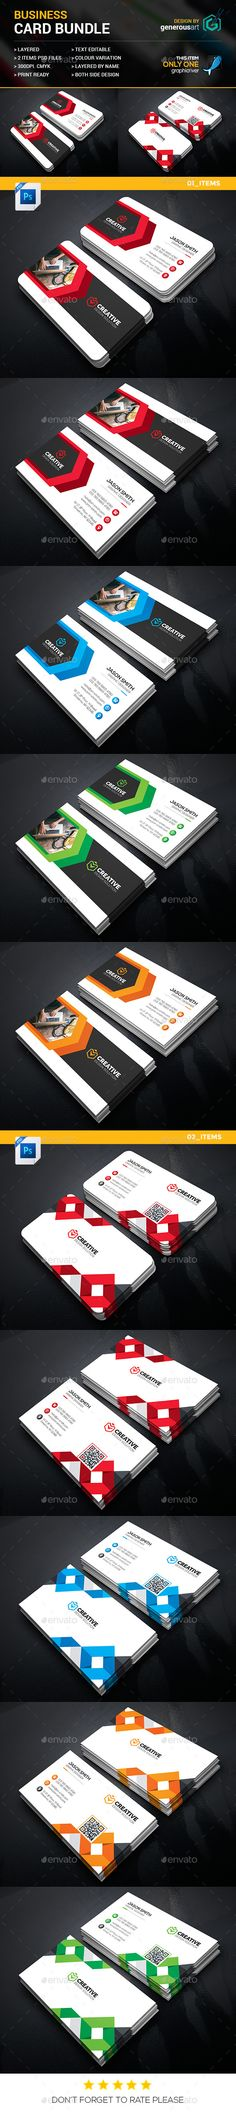 Business Card Templates PSD Bundle. Download here: https://graphicriver.net/item/business-bundle-2-in-1/17550915?ref=ksioks